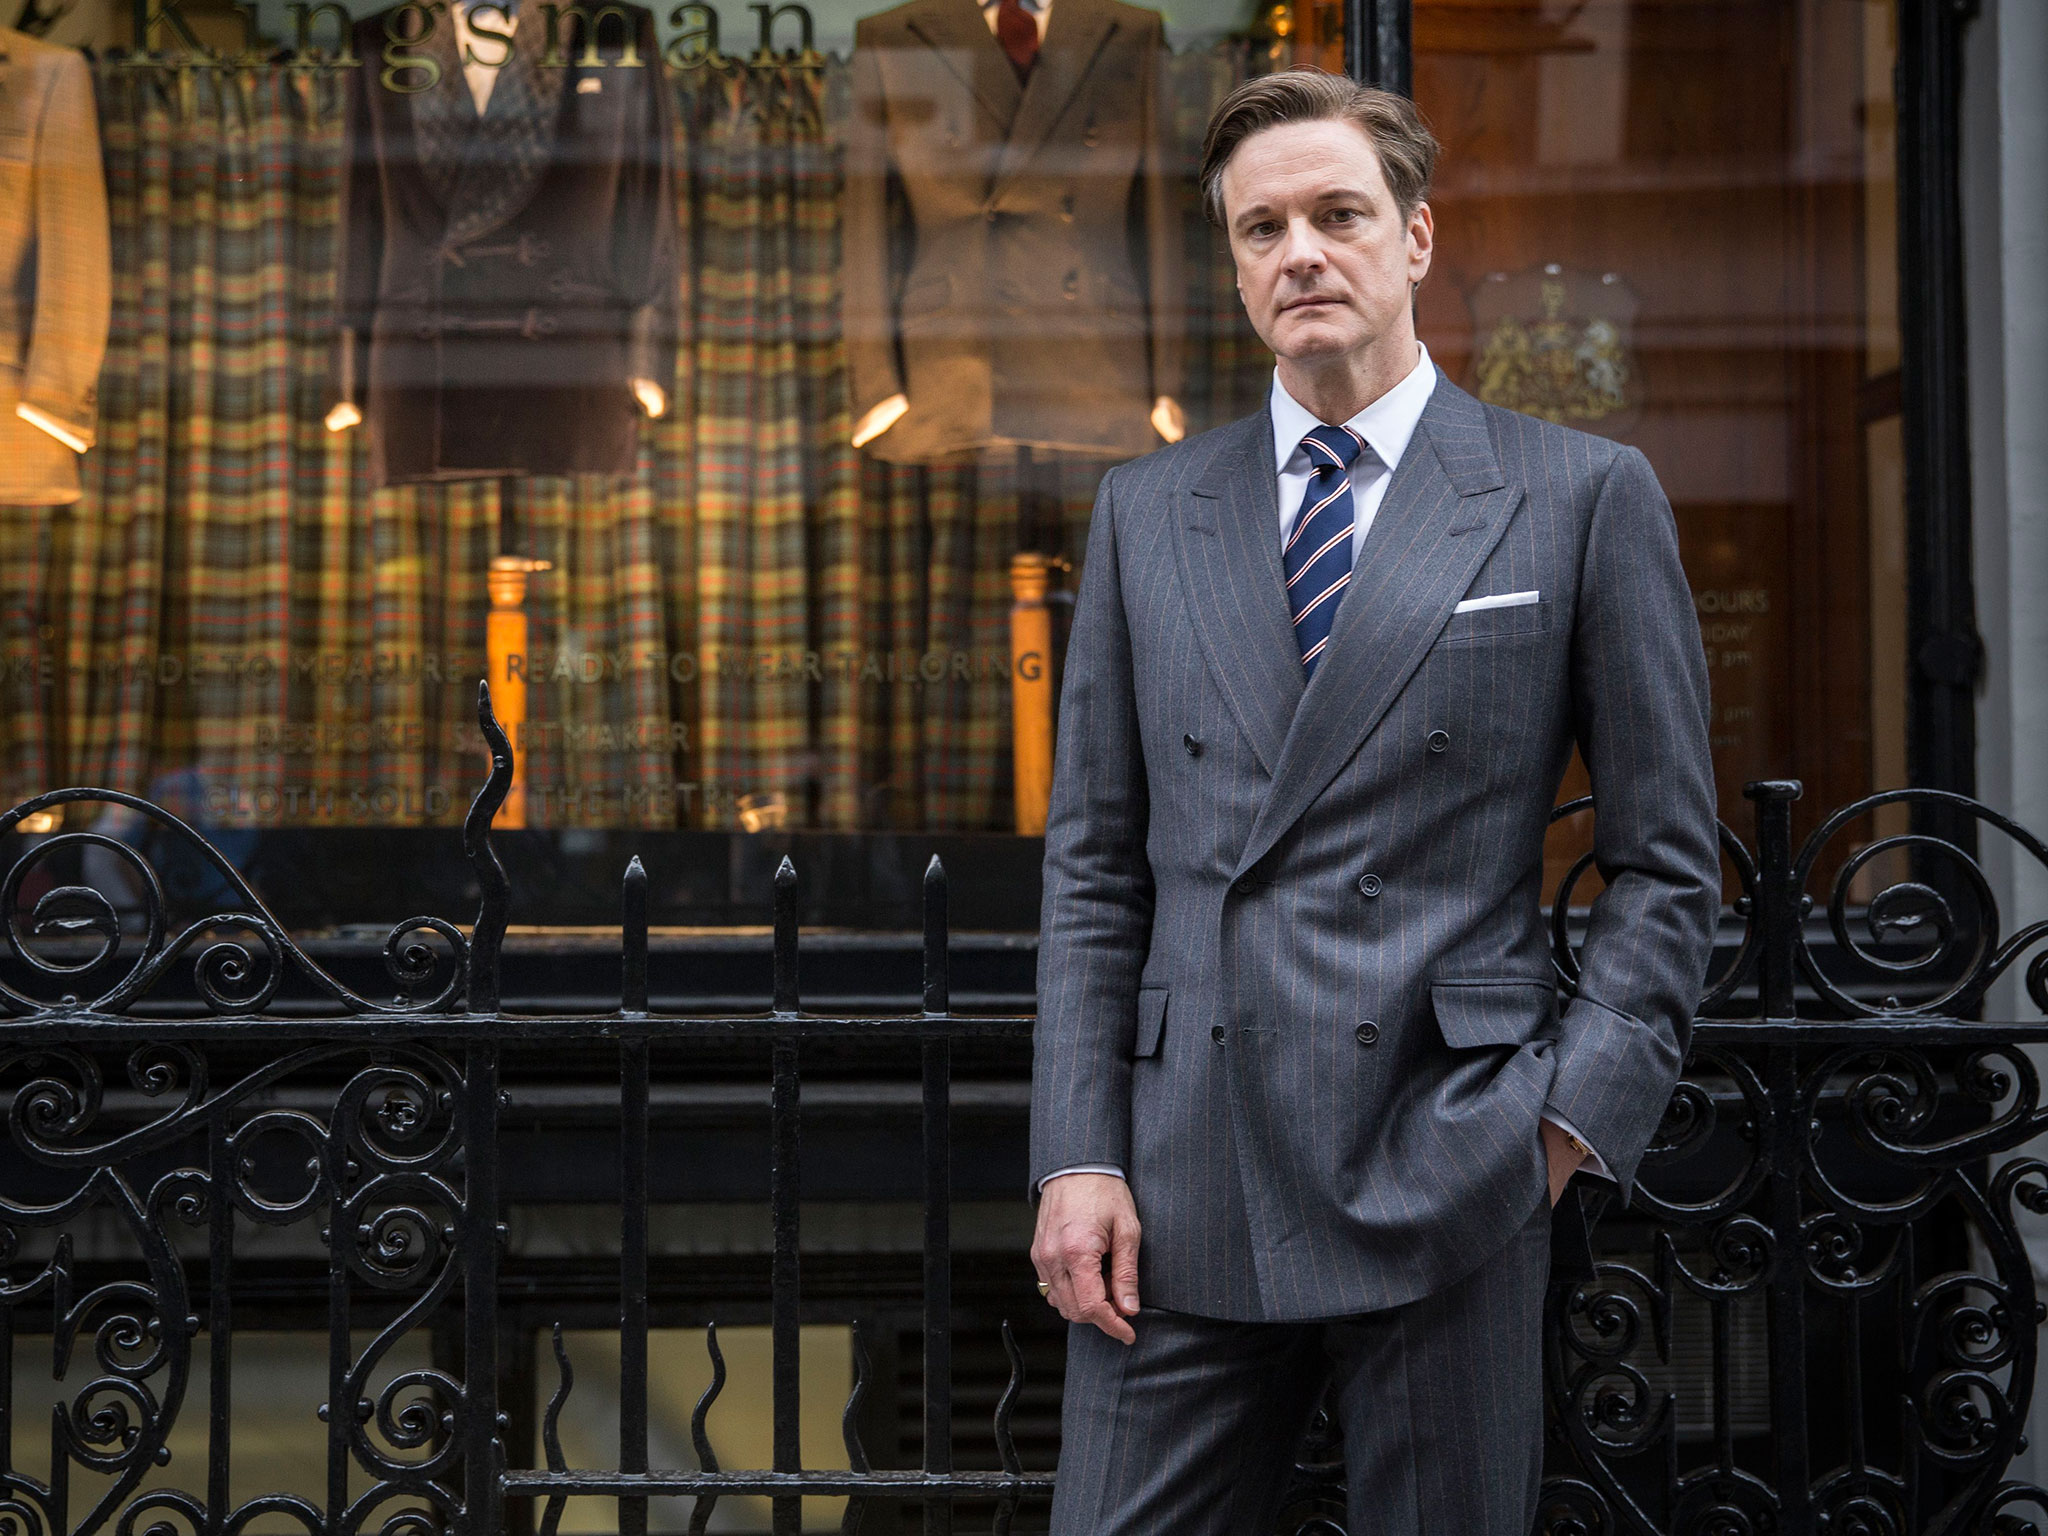 Colin Firth spotted on set of 'Kingsman: The Golden Circle'